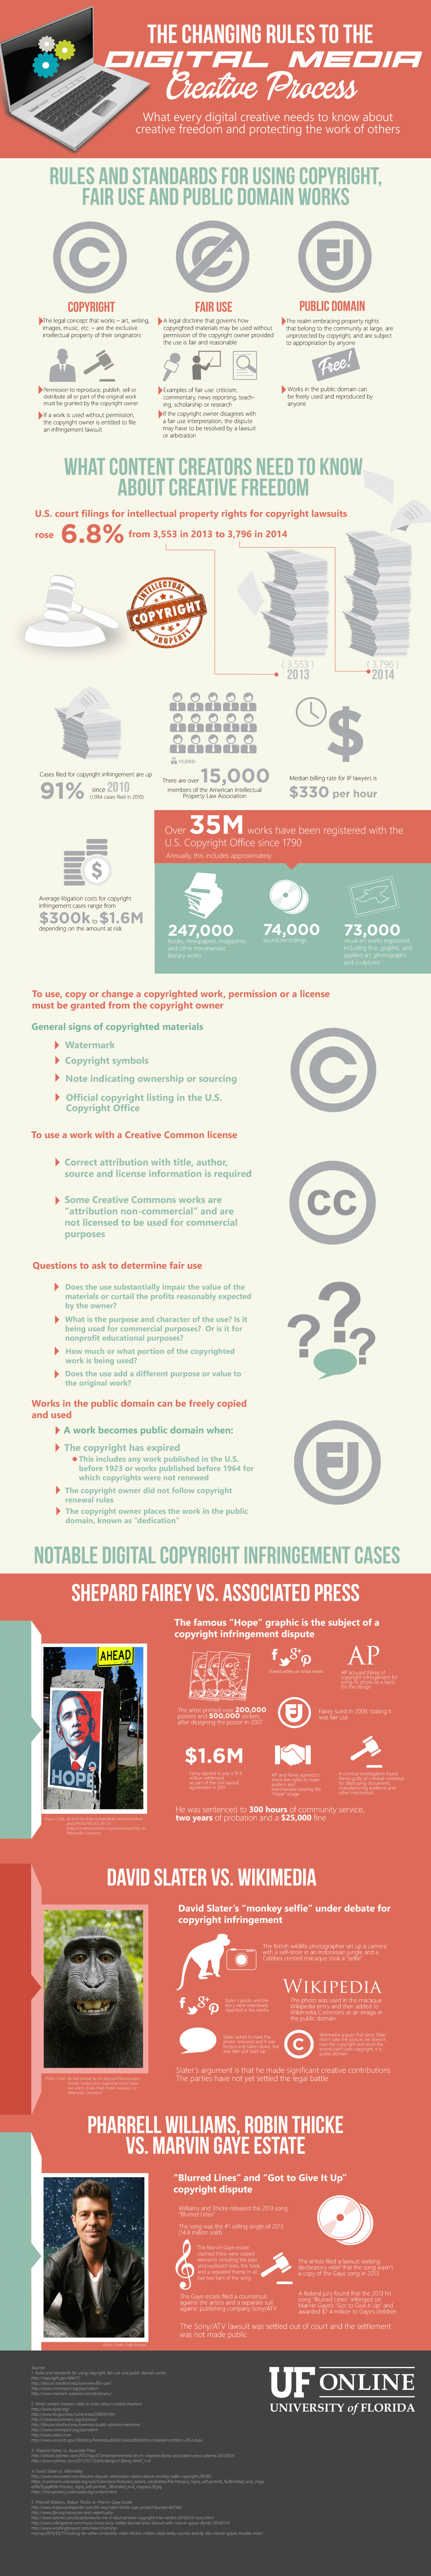 UF Online Infographic: The Changing Rules to the Digital Media Creative Process